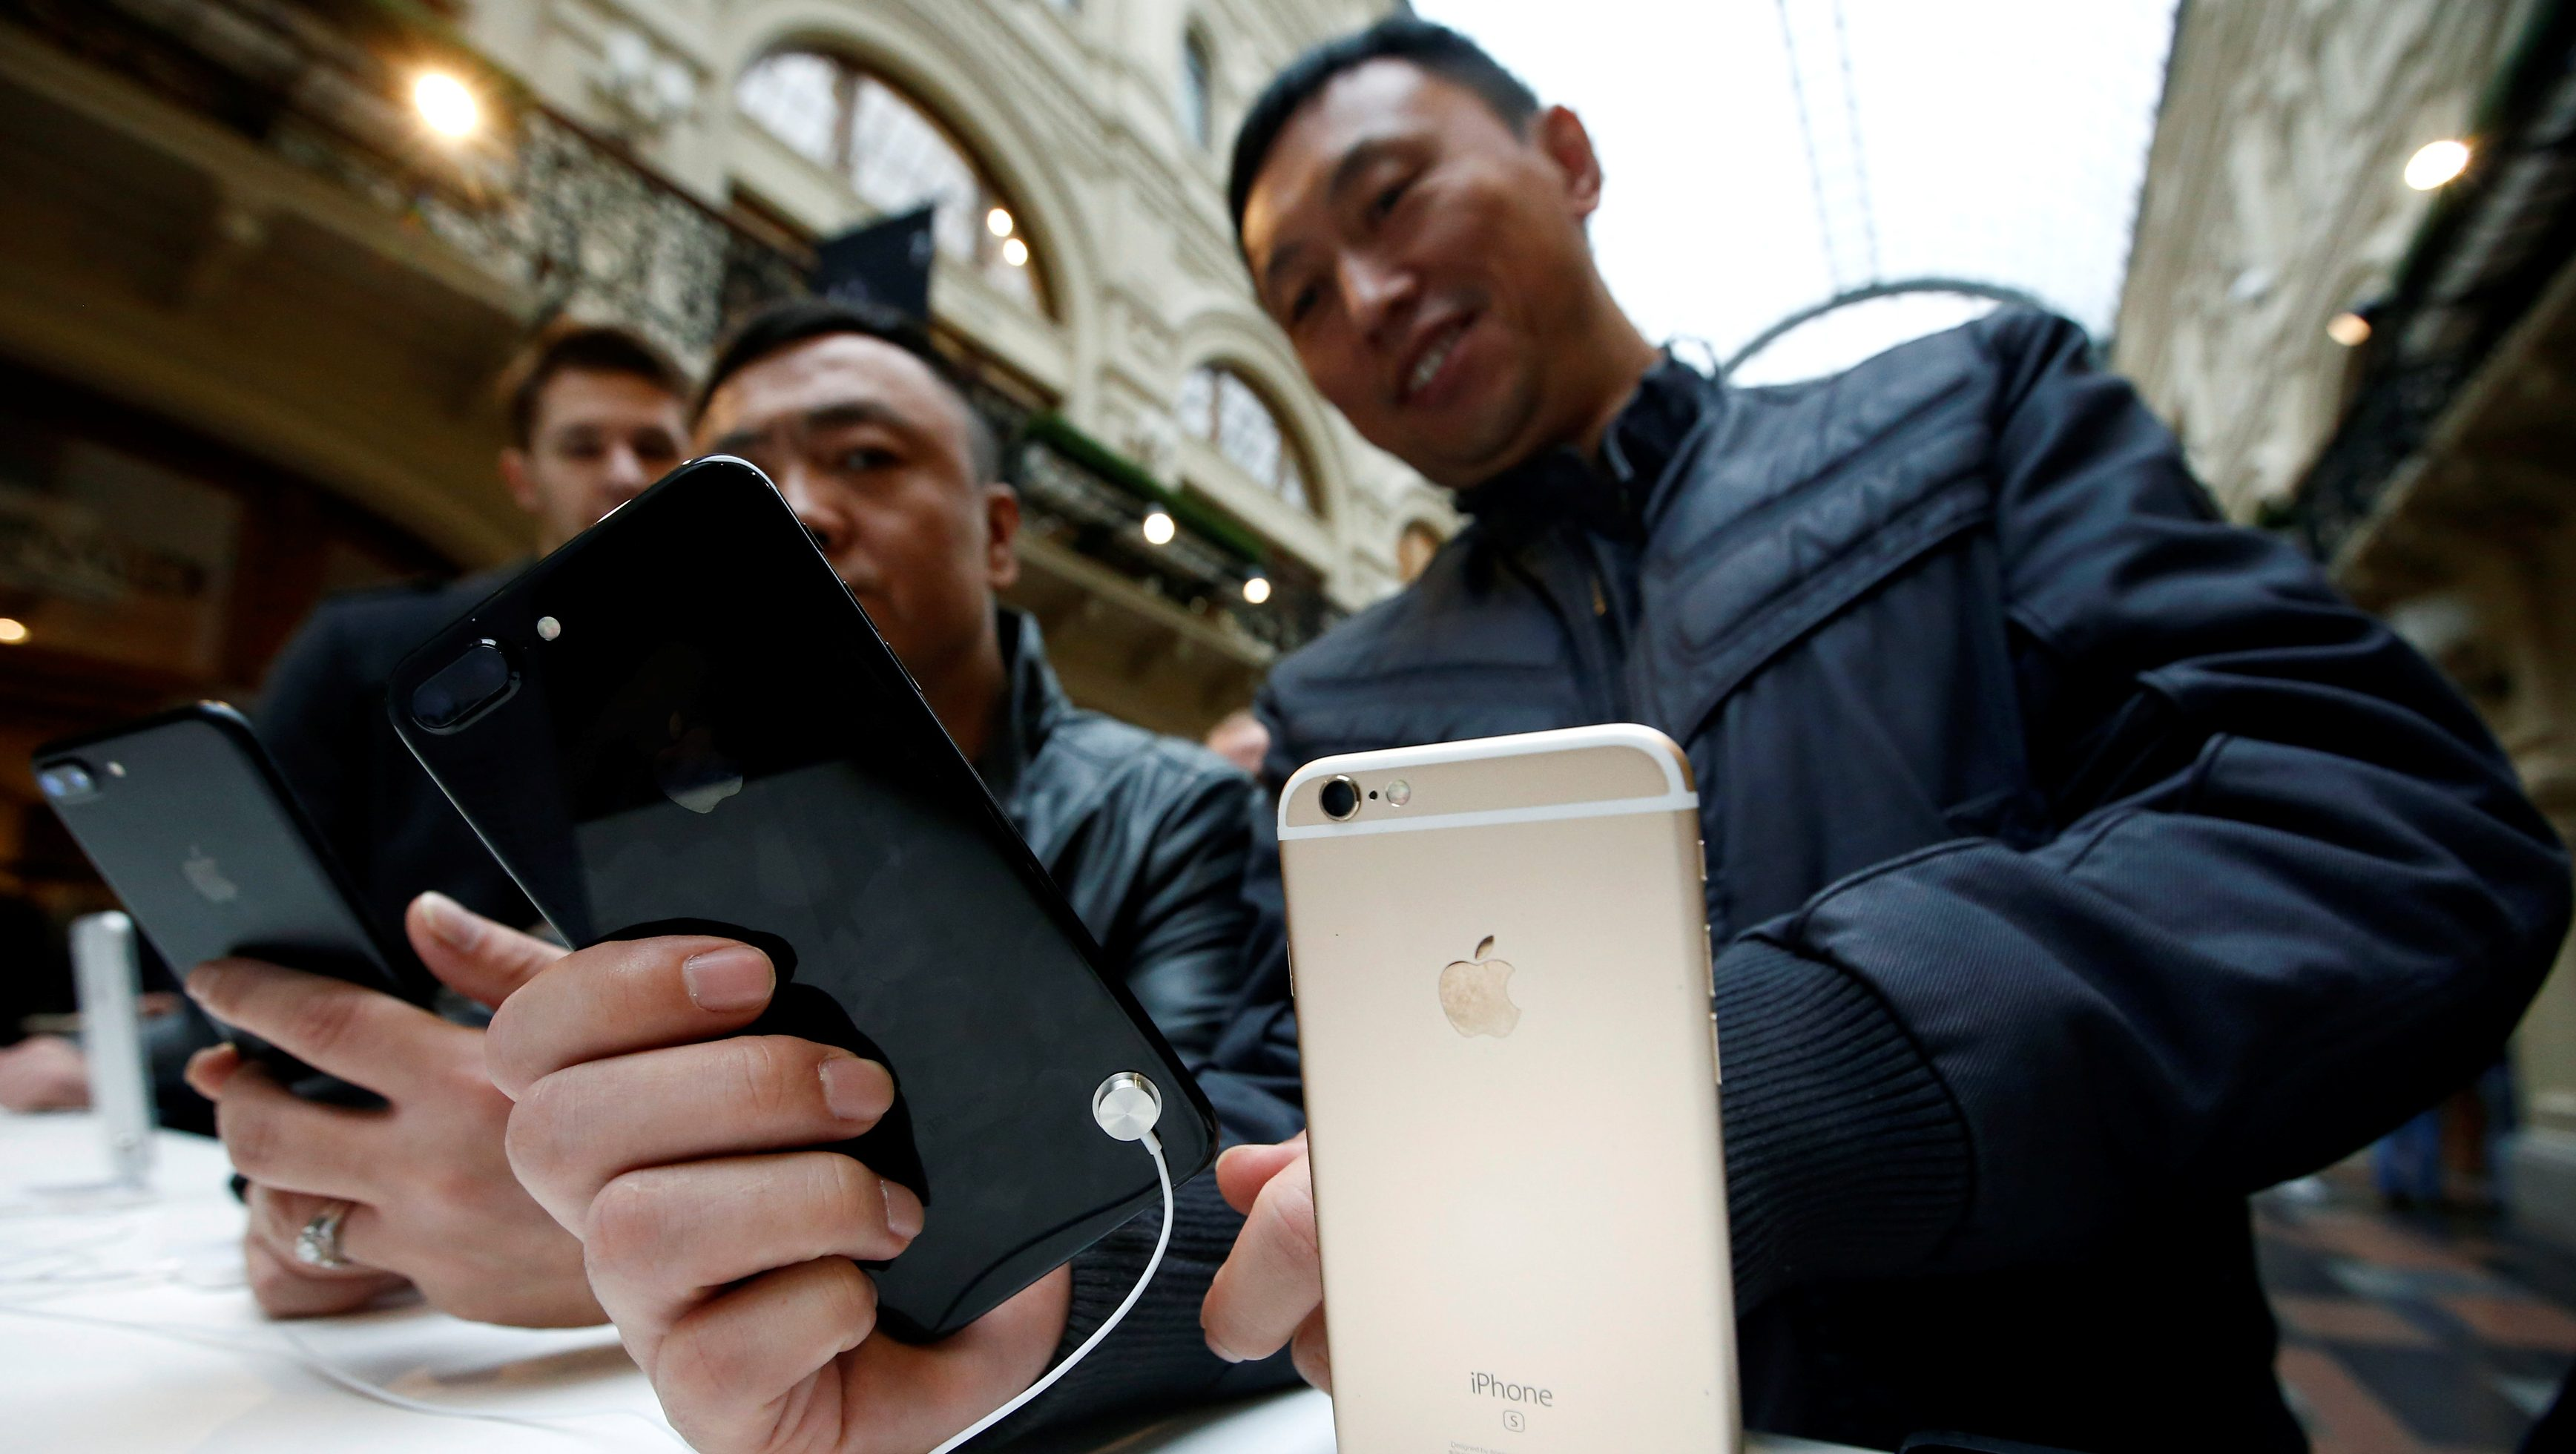 Customers gather at a store selling Apple products during the launch of the new iPhone 7 sales at the State Department Store, GUM, in central Moscow, Russia September 23, 2016. REUTERS/Sergei Karpukhin